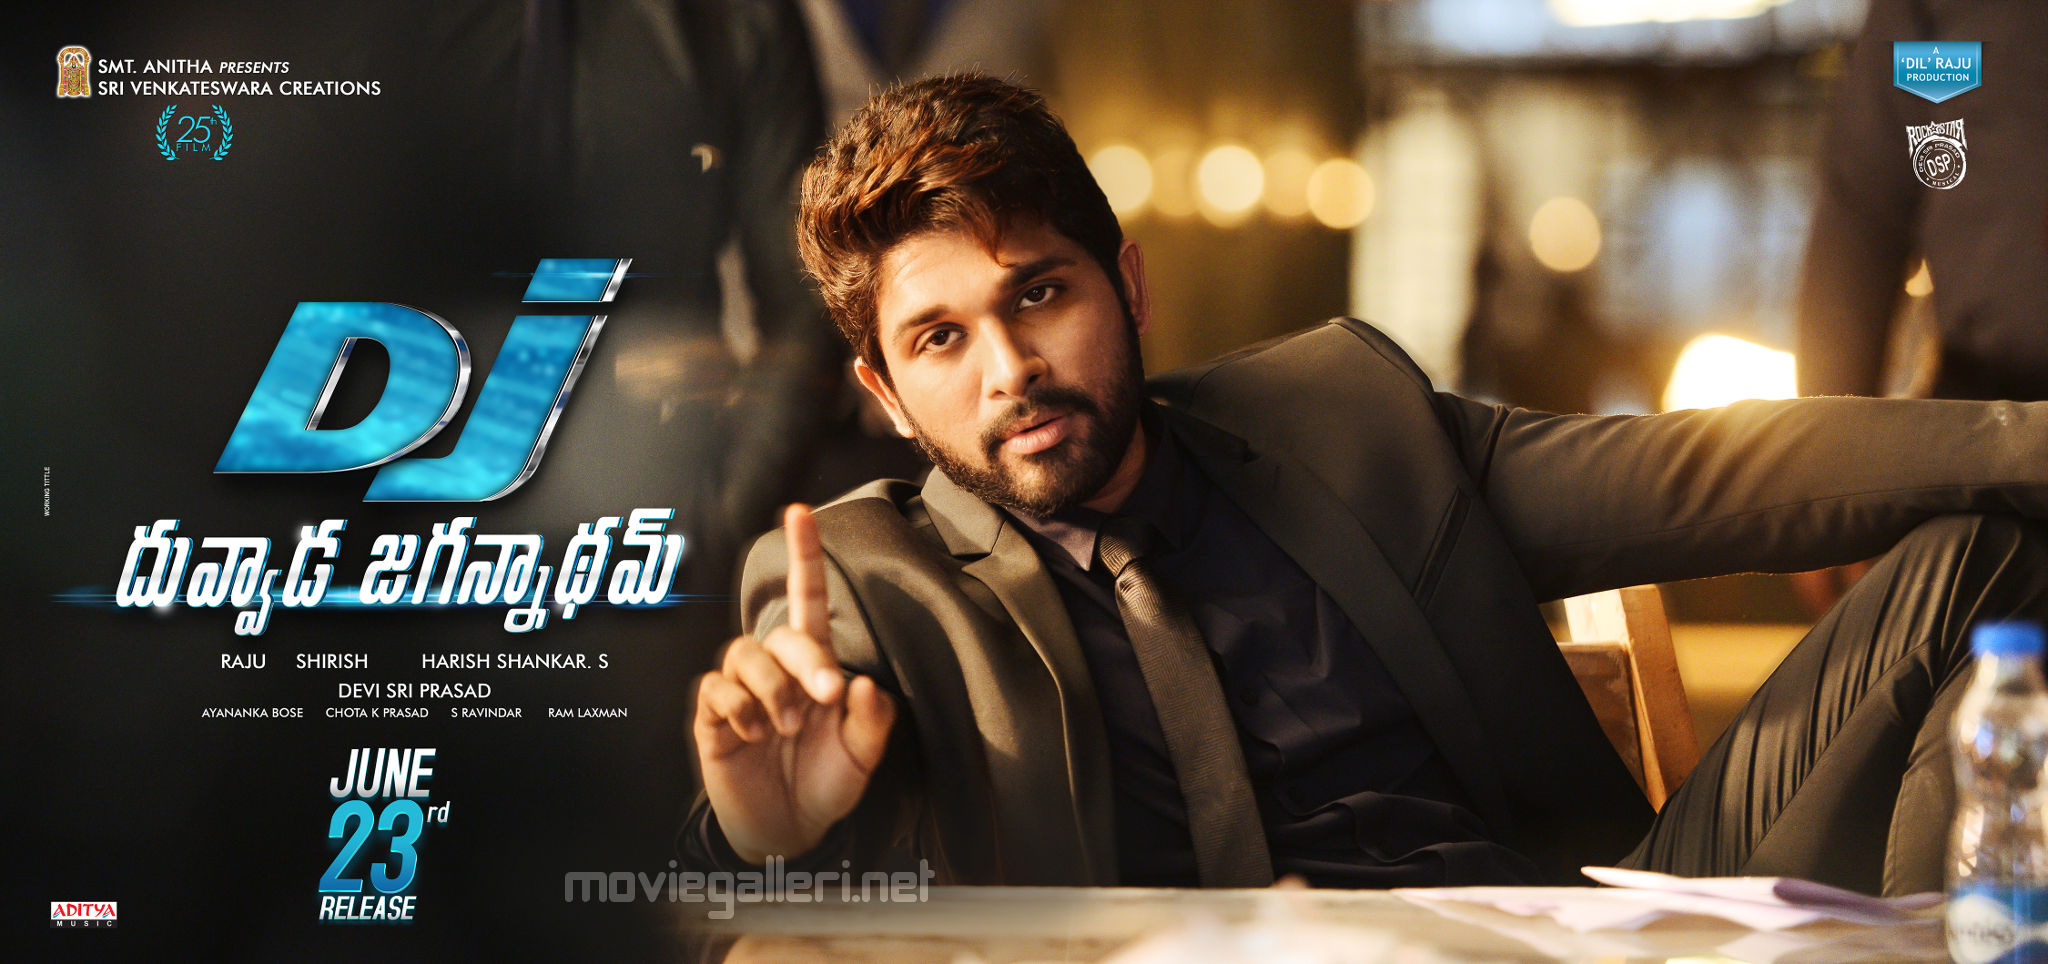 Allu Arjun DJ Duvvada Jagannadham Movie Release Date June 23rd Wallpaper